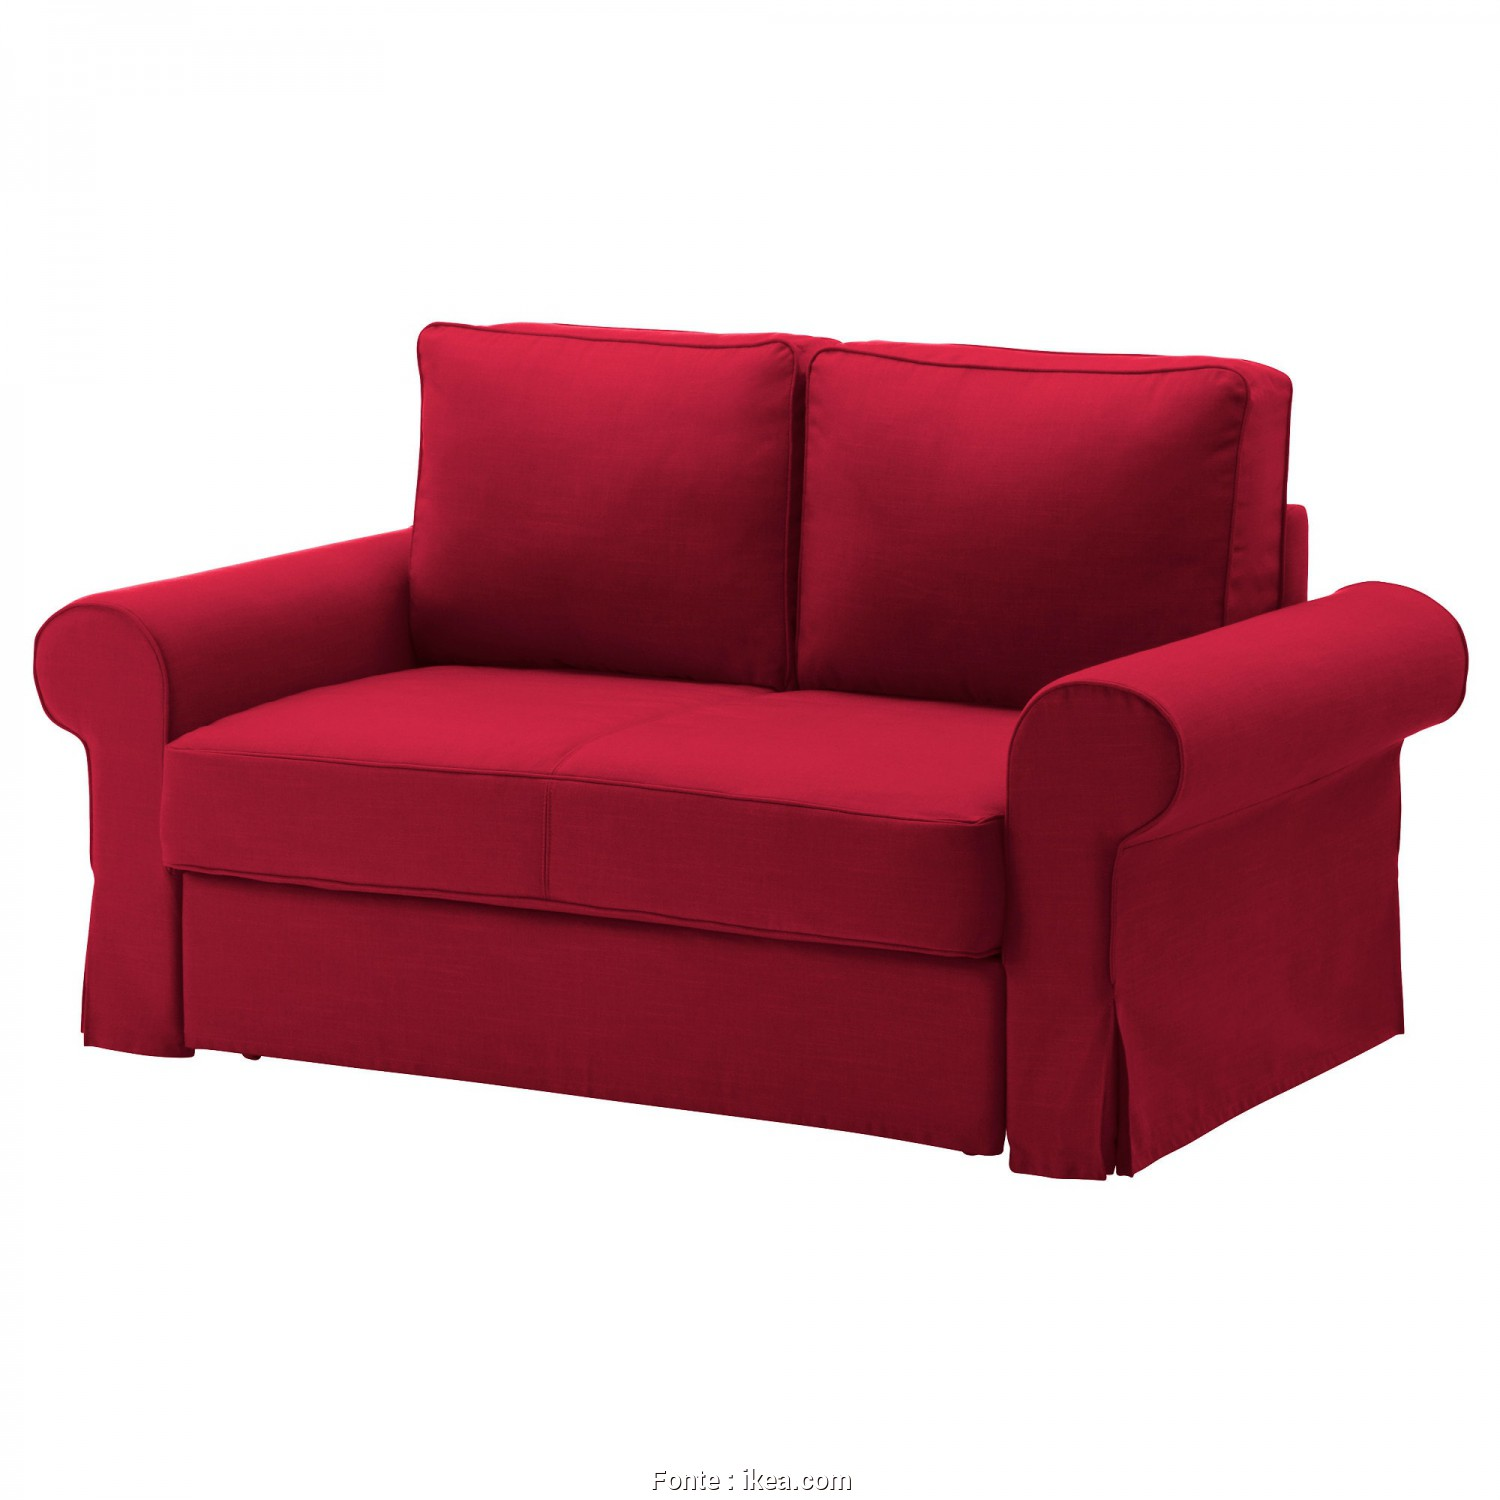 Ikea Backabro 2 Sitzer, A Buon Mercato BACKABRO 2Er-Bettsofa, Nordvalla Rot